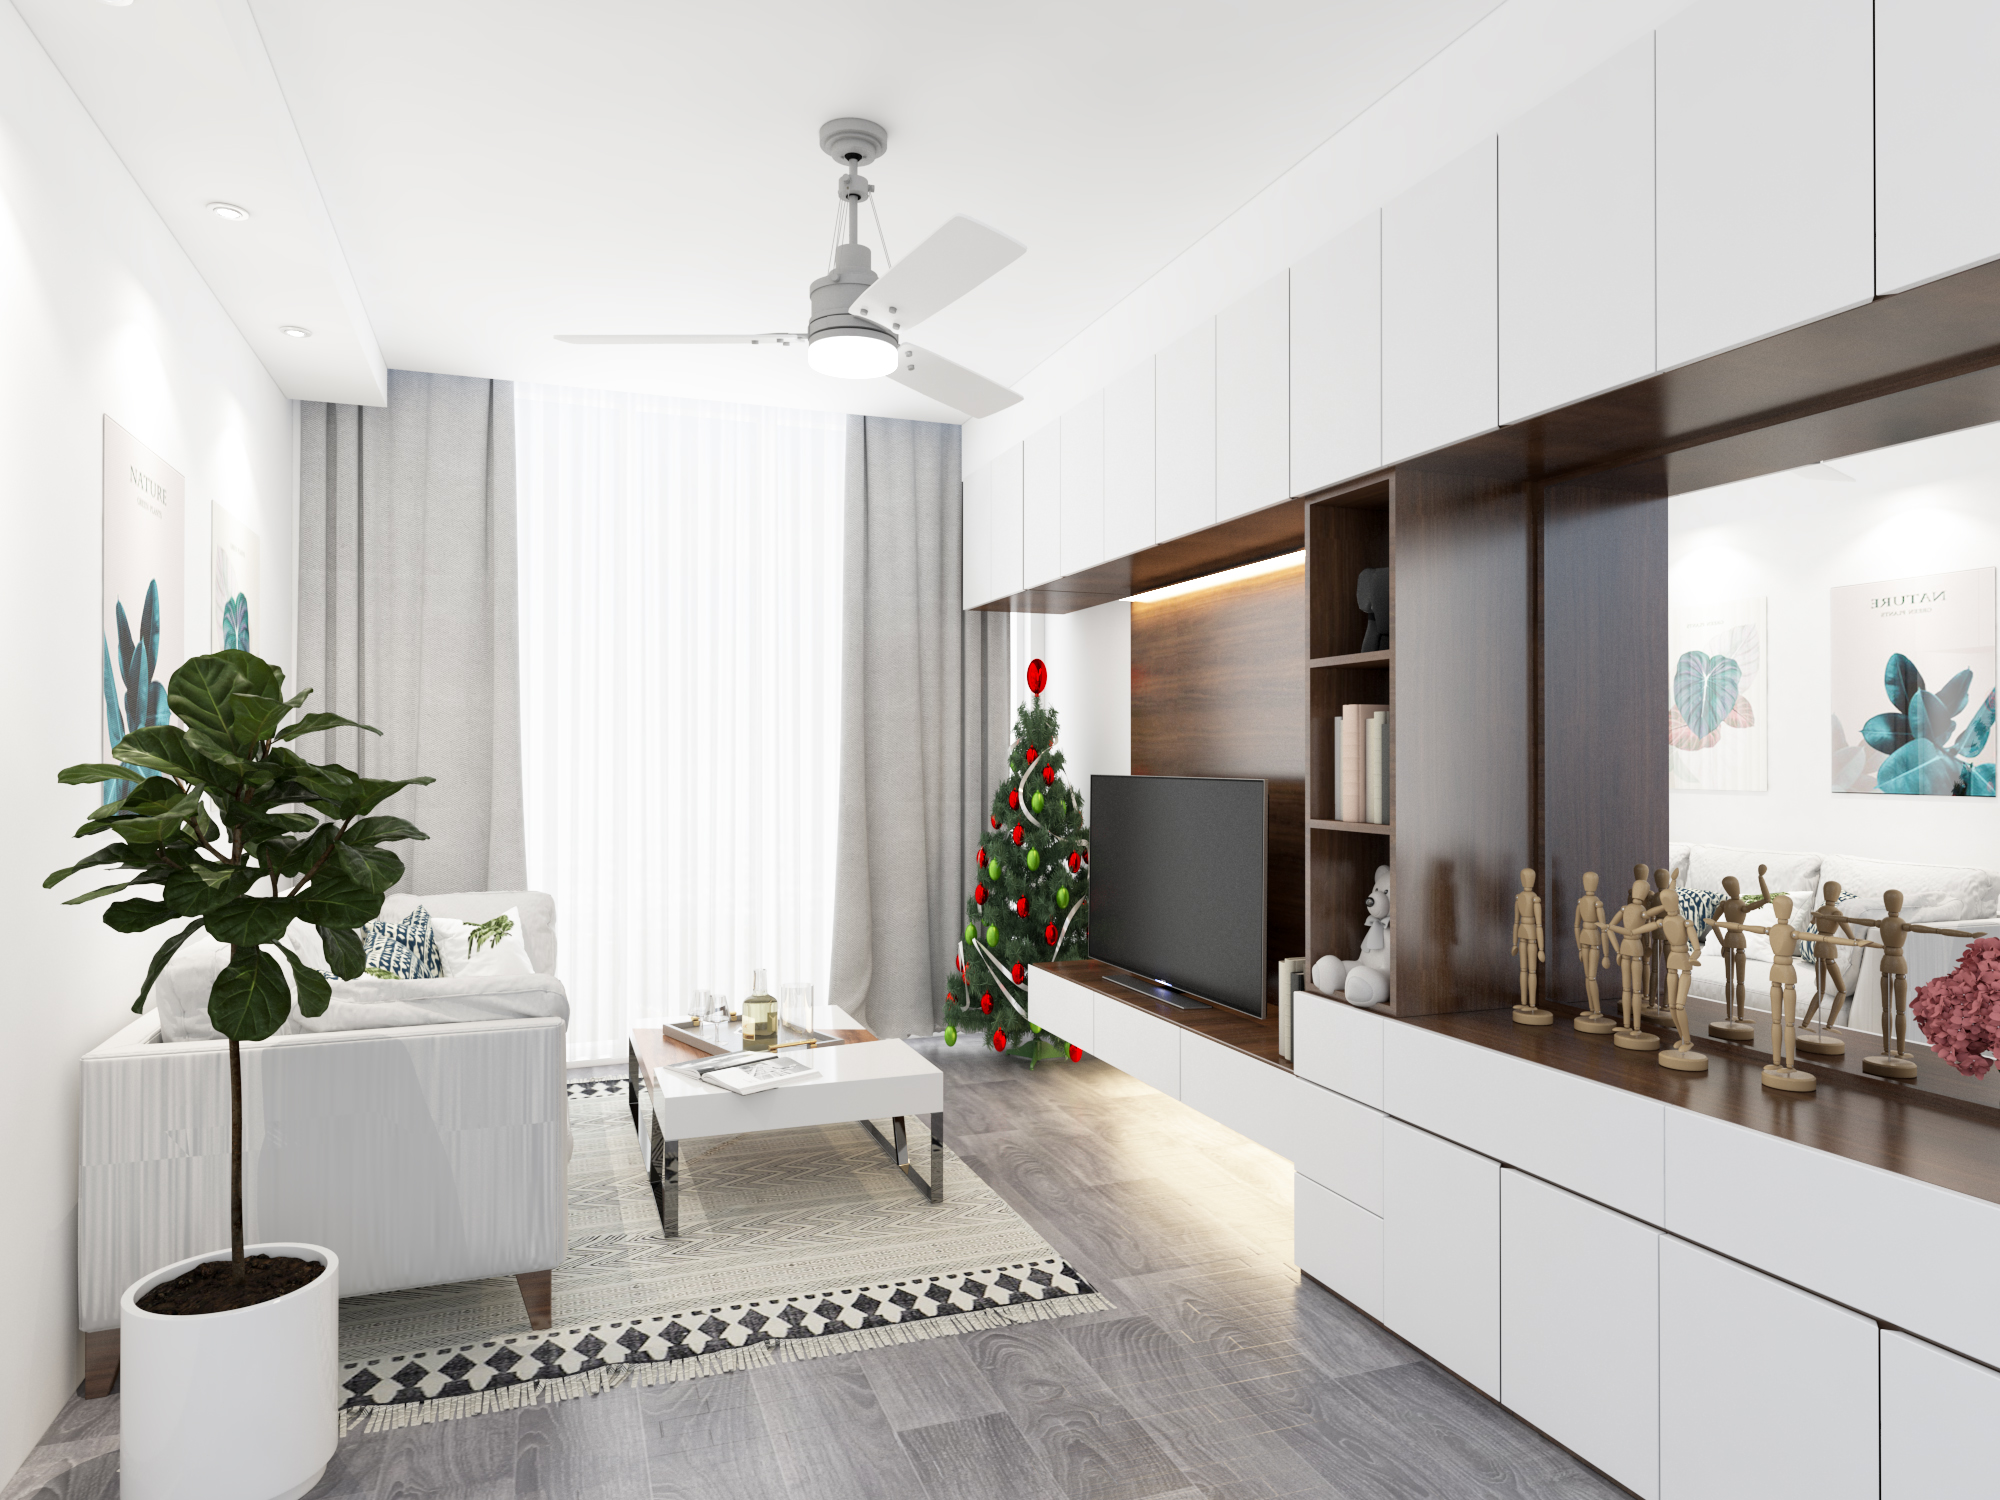 estertal_living room render_3D